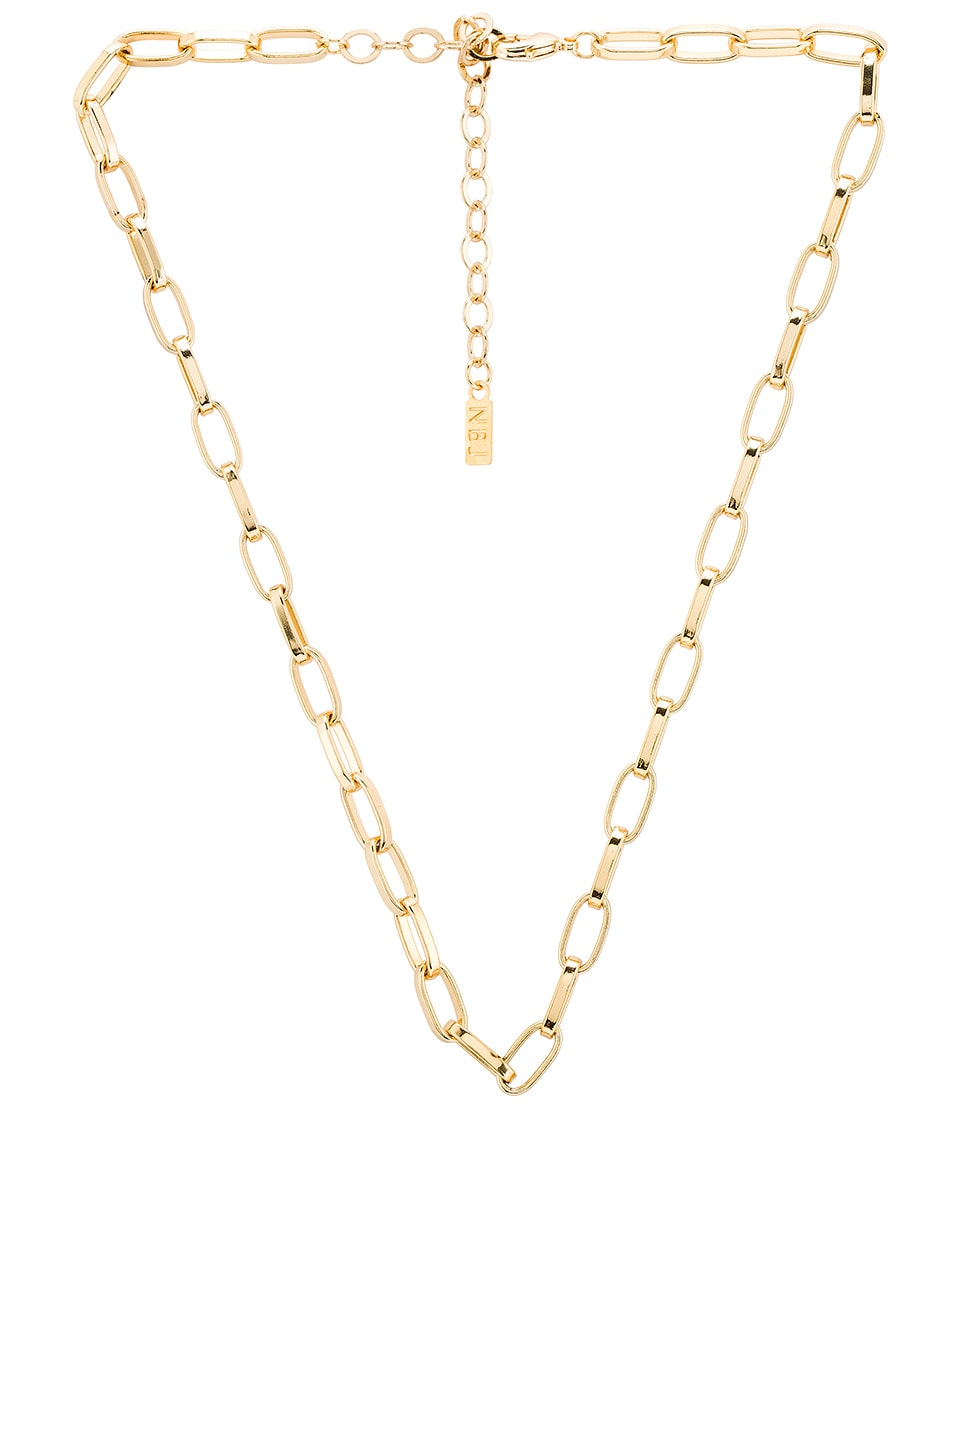 Natalie B Jewelry Shelby Large Rectangular Link Necklace in Gold